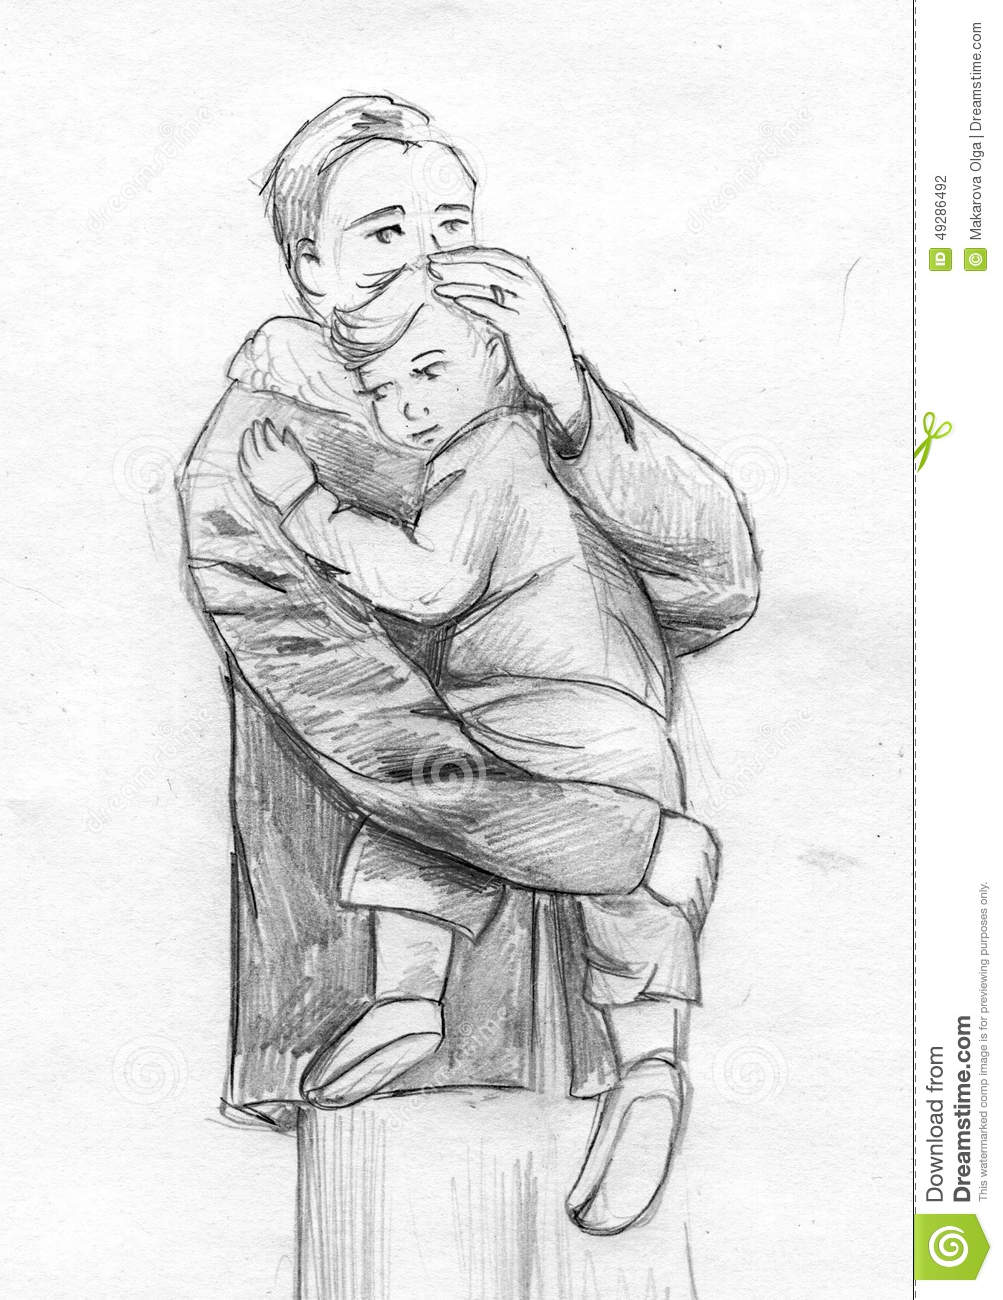 Father and child pencil sketch download preview